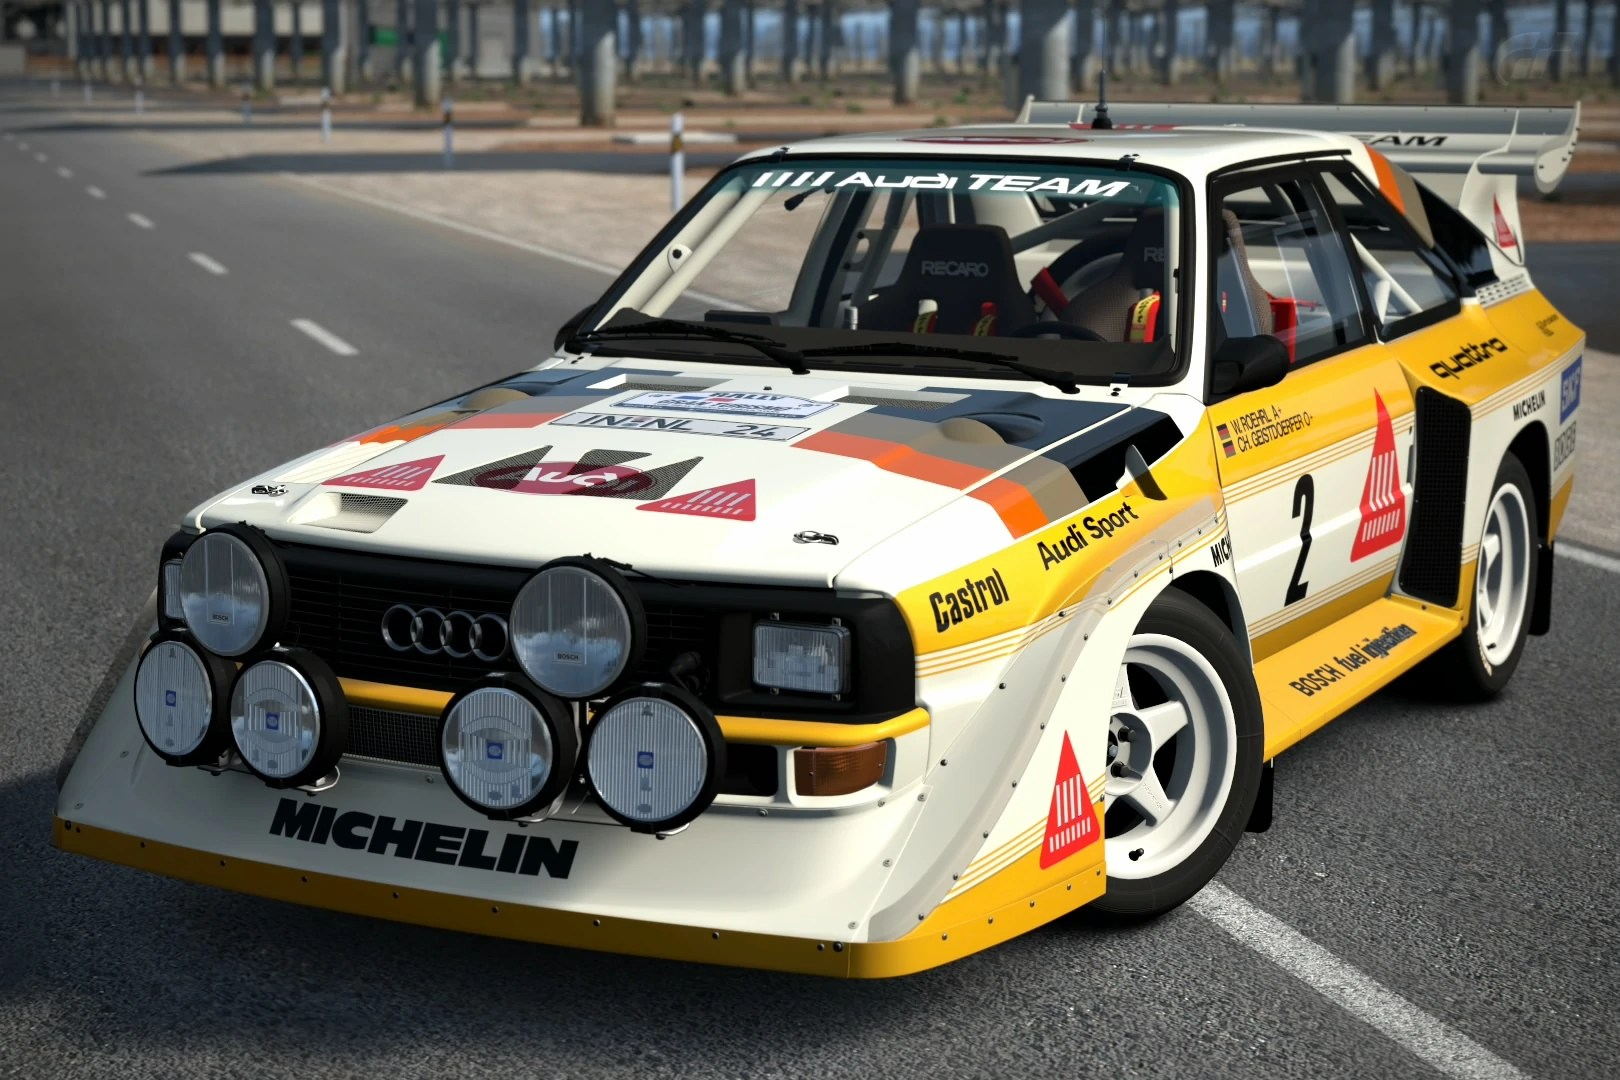 hight resolution of audi sport quattro s1 rally car 86